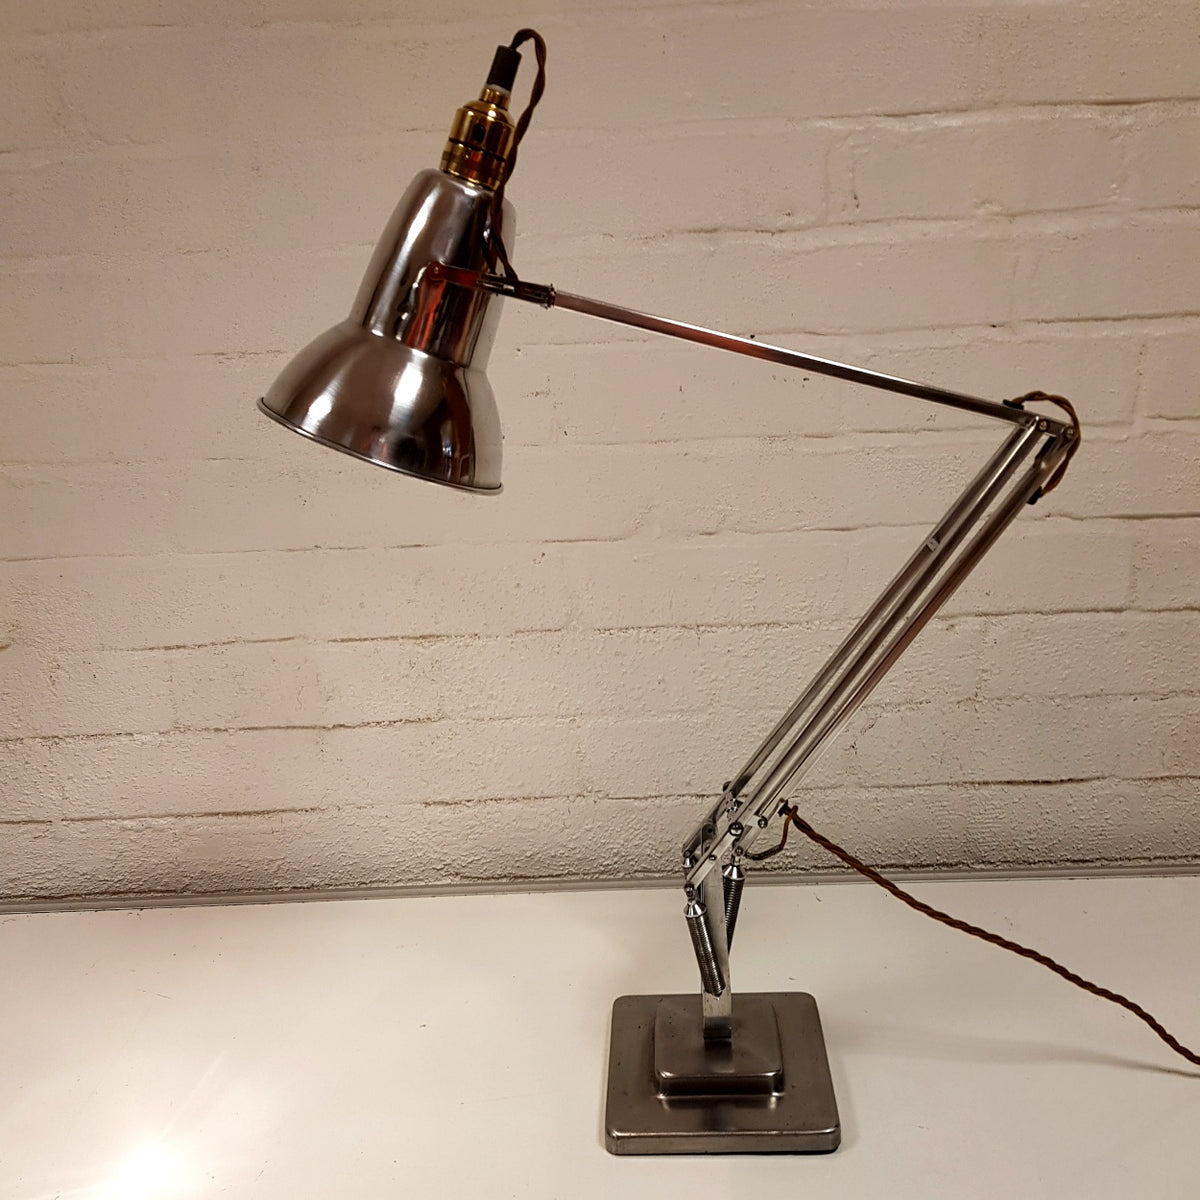 Polished Herbert Terry Anglepoise Lamp